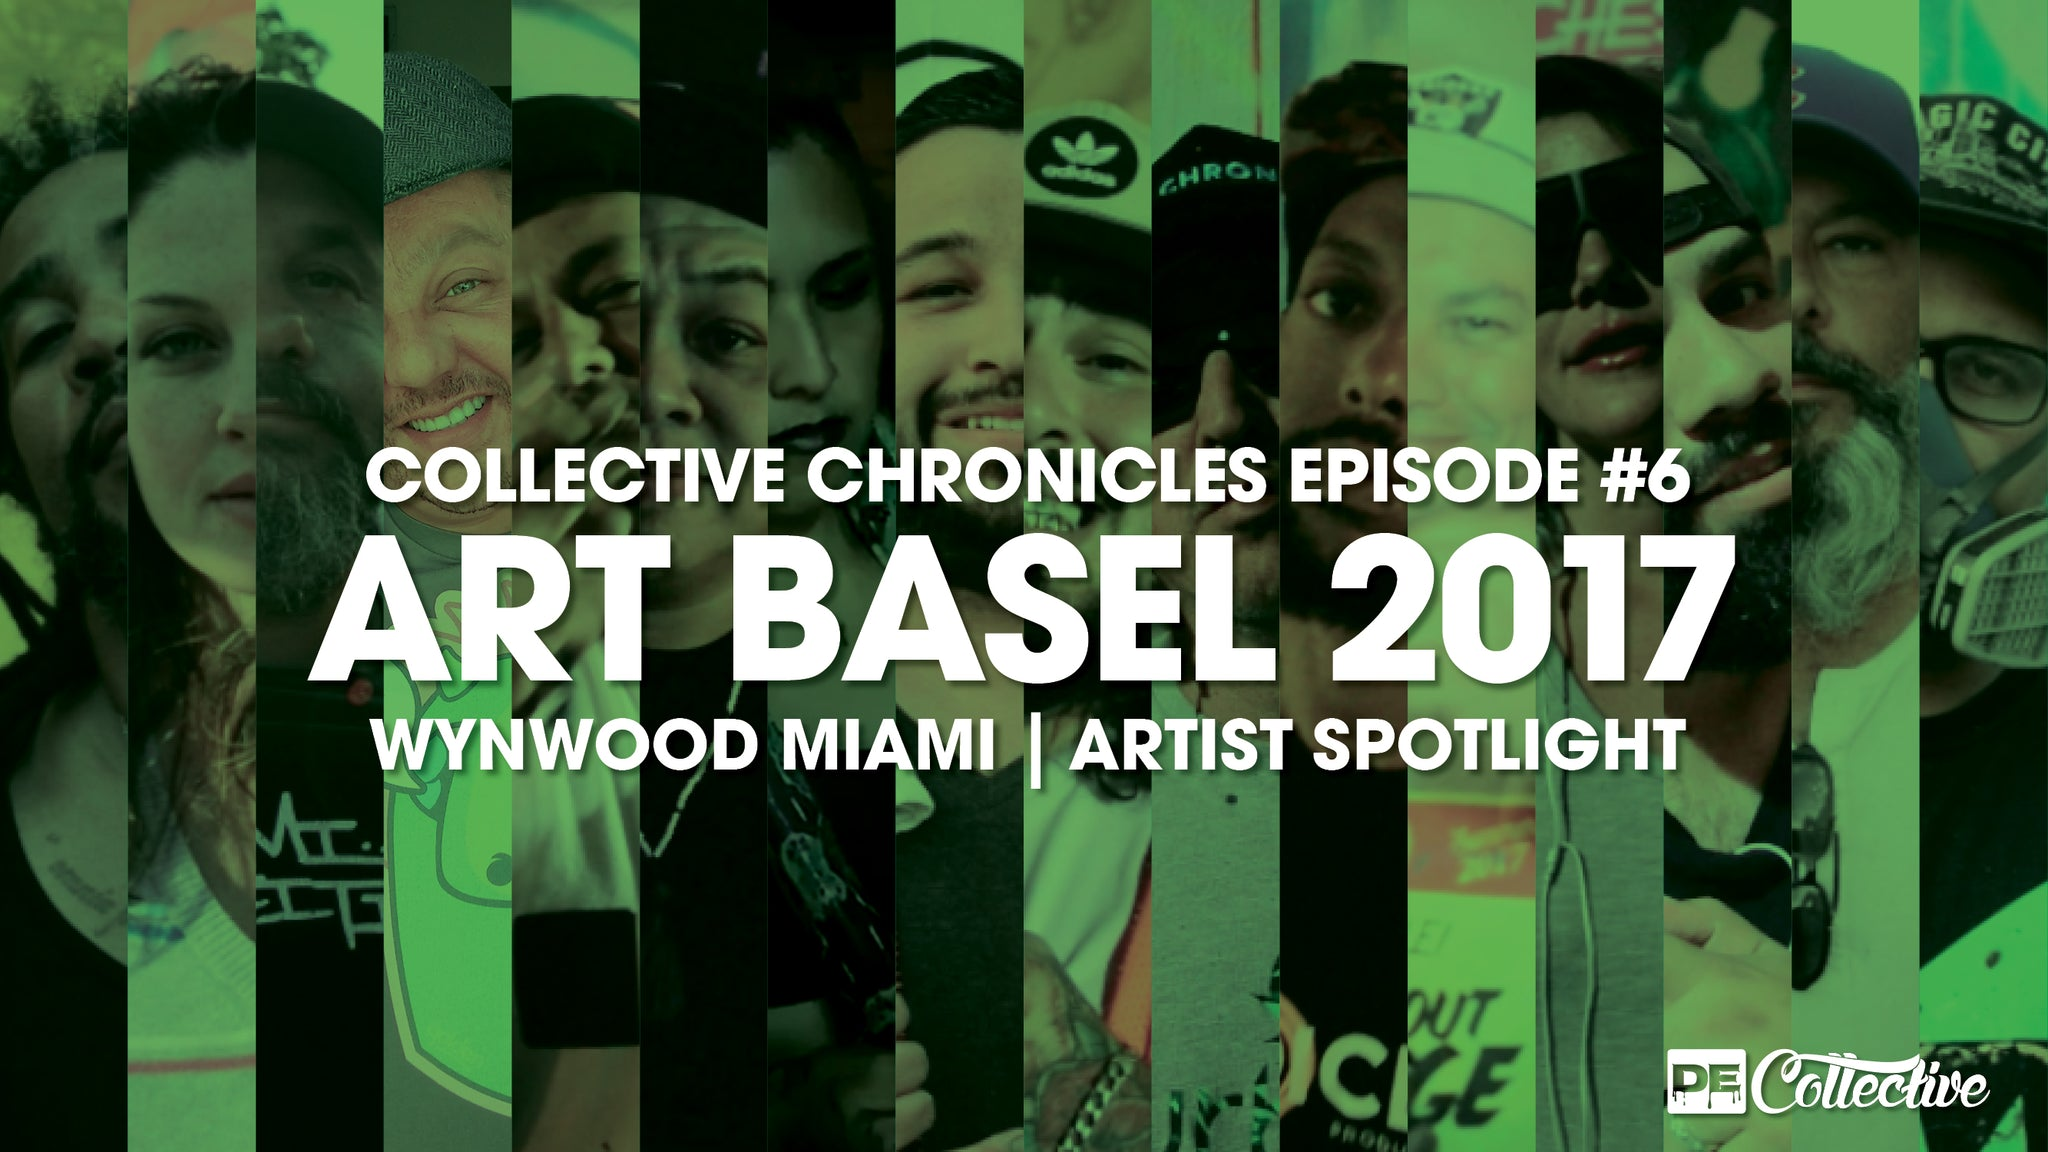 Art Basel 17 Artist Spotlights -> Collective Chronicles #6